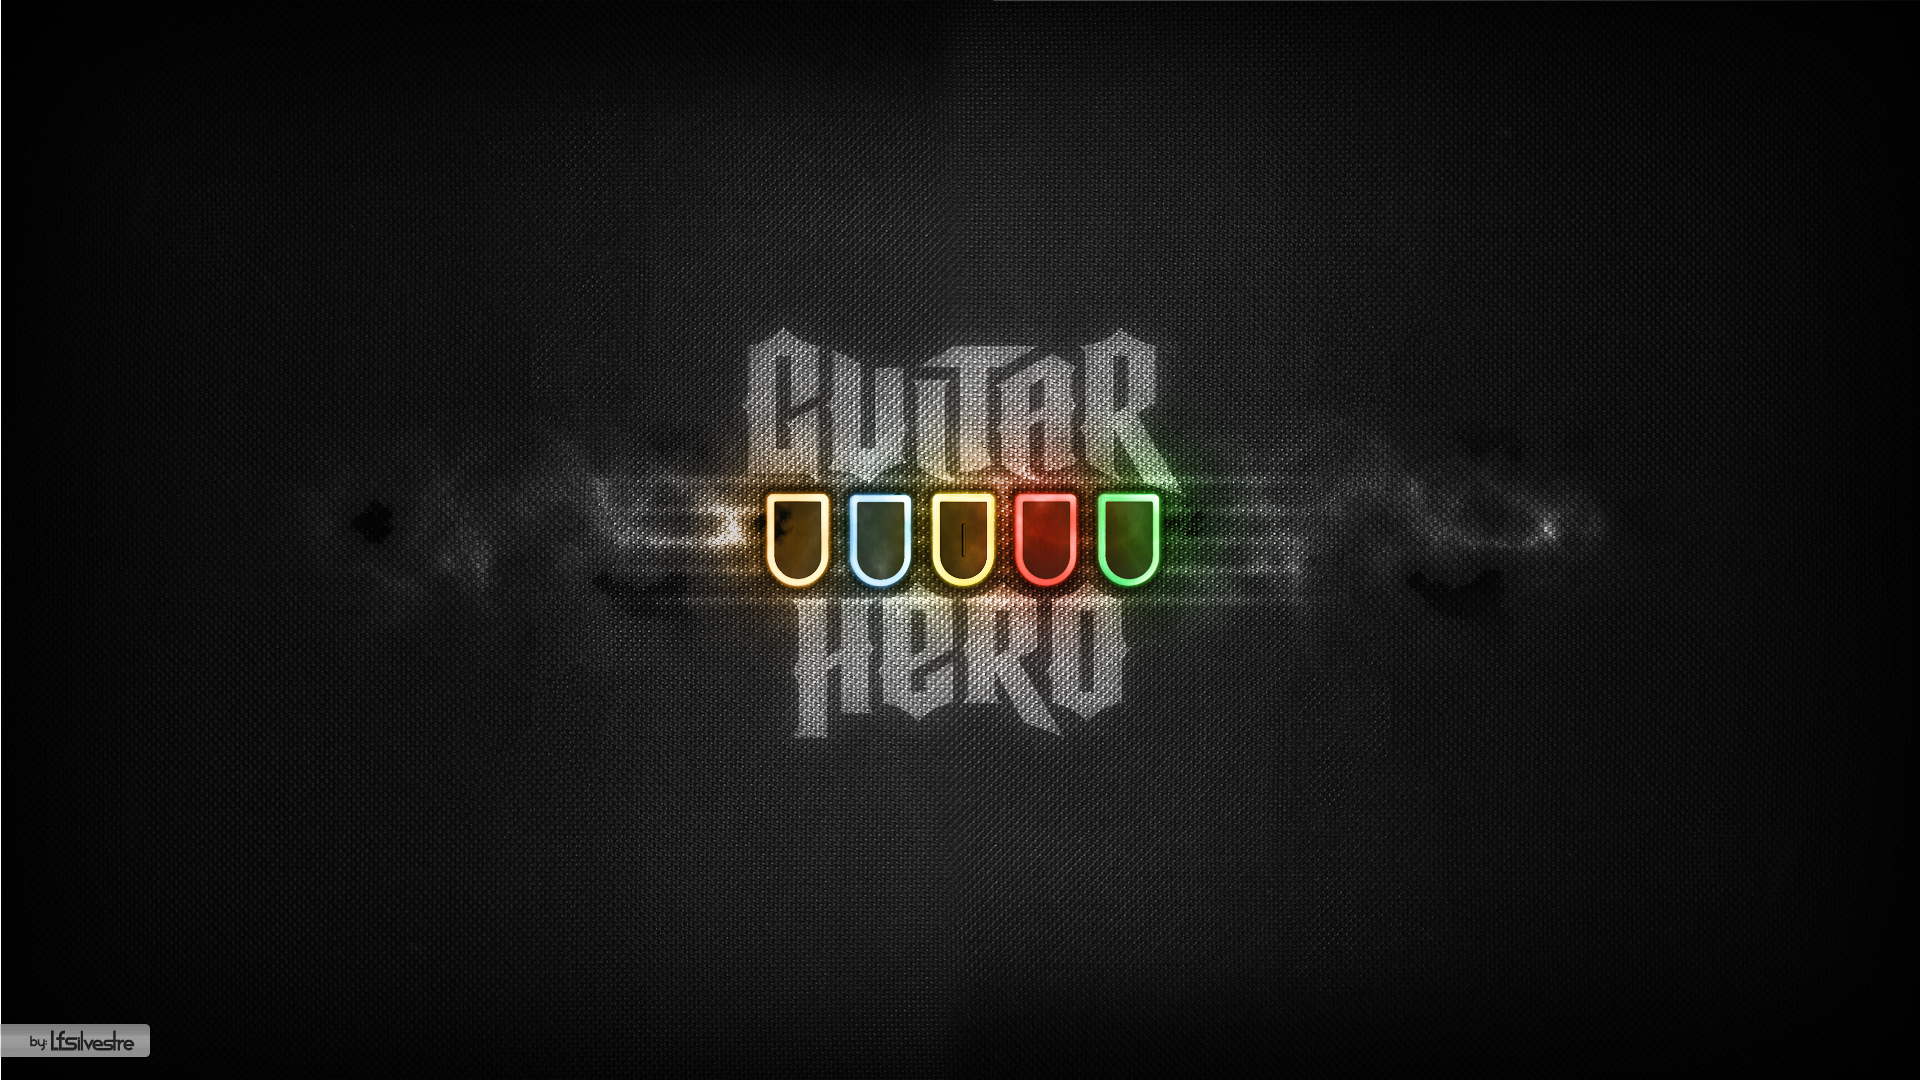 Fine Guitar Hero Images Wallpapers Dismas Chaimson